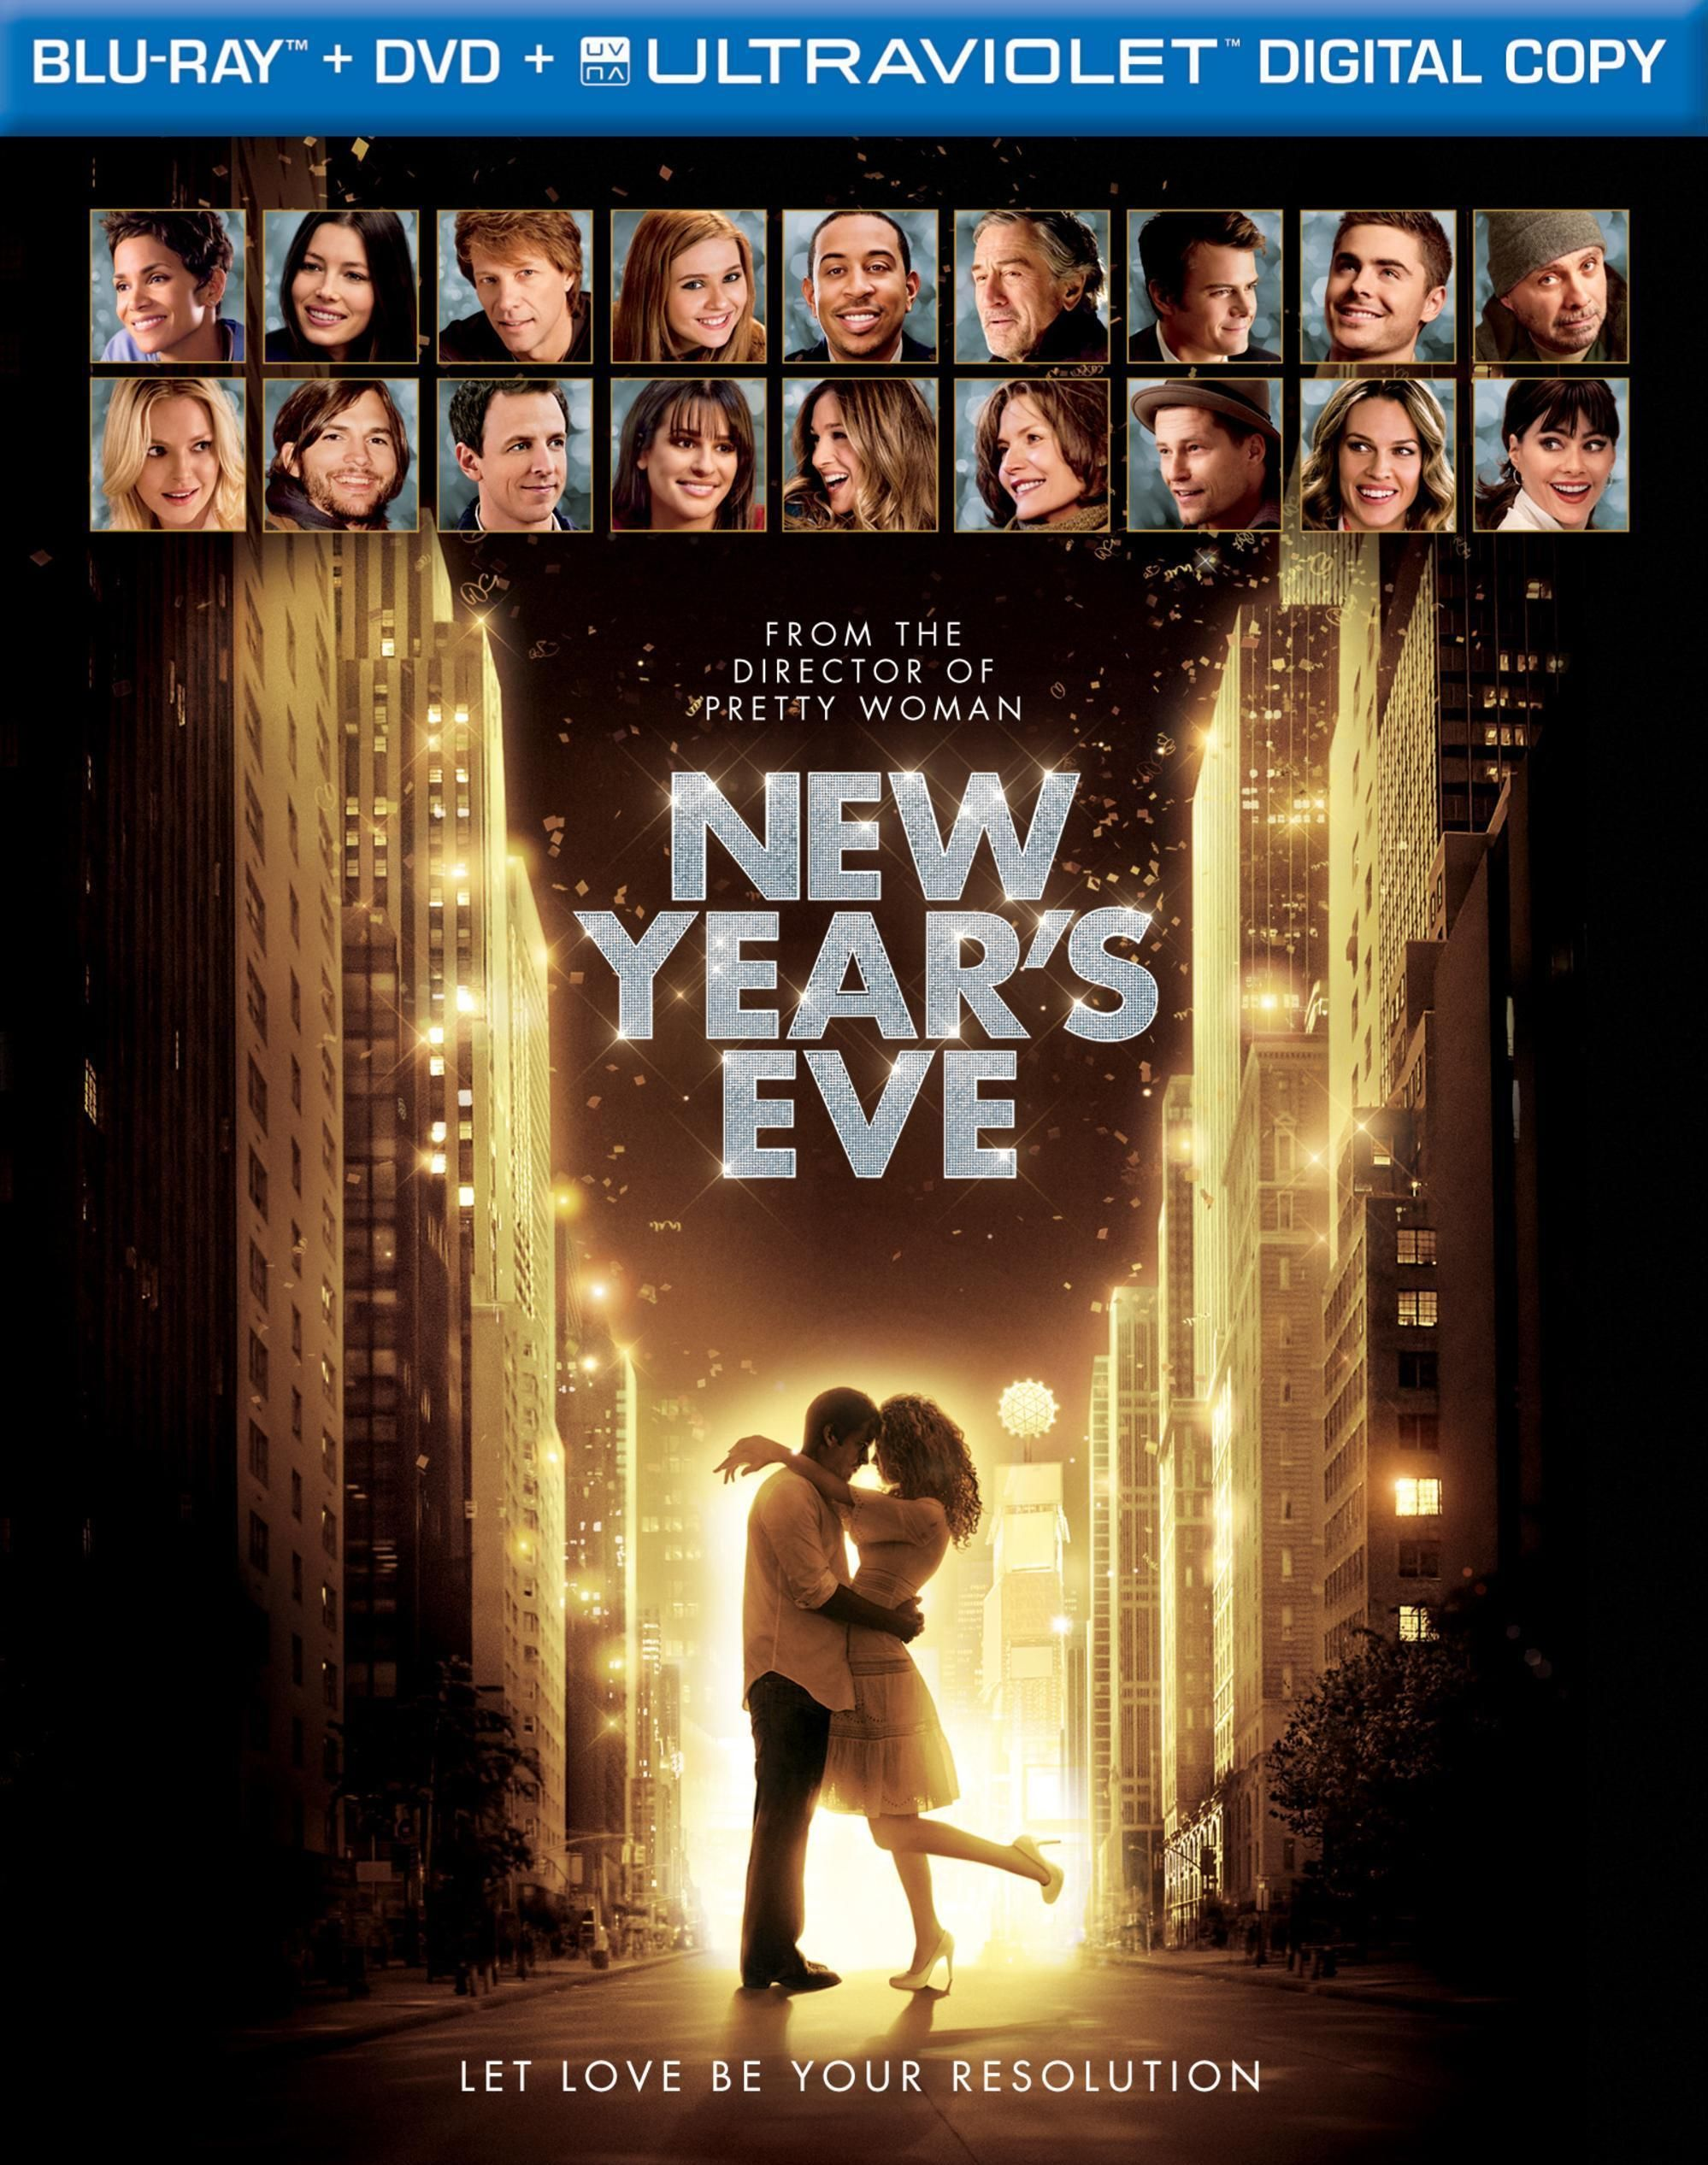 New Year's Eve | New year's eve film